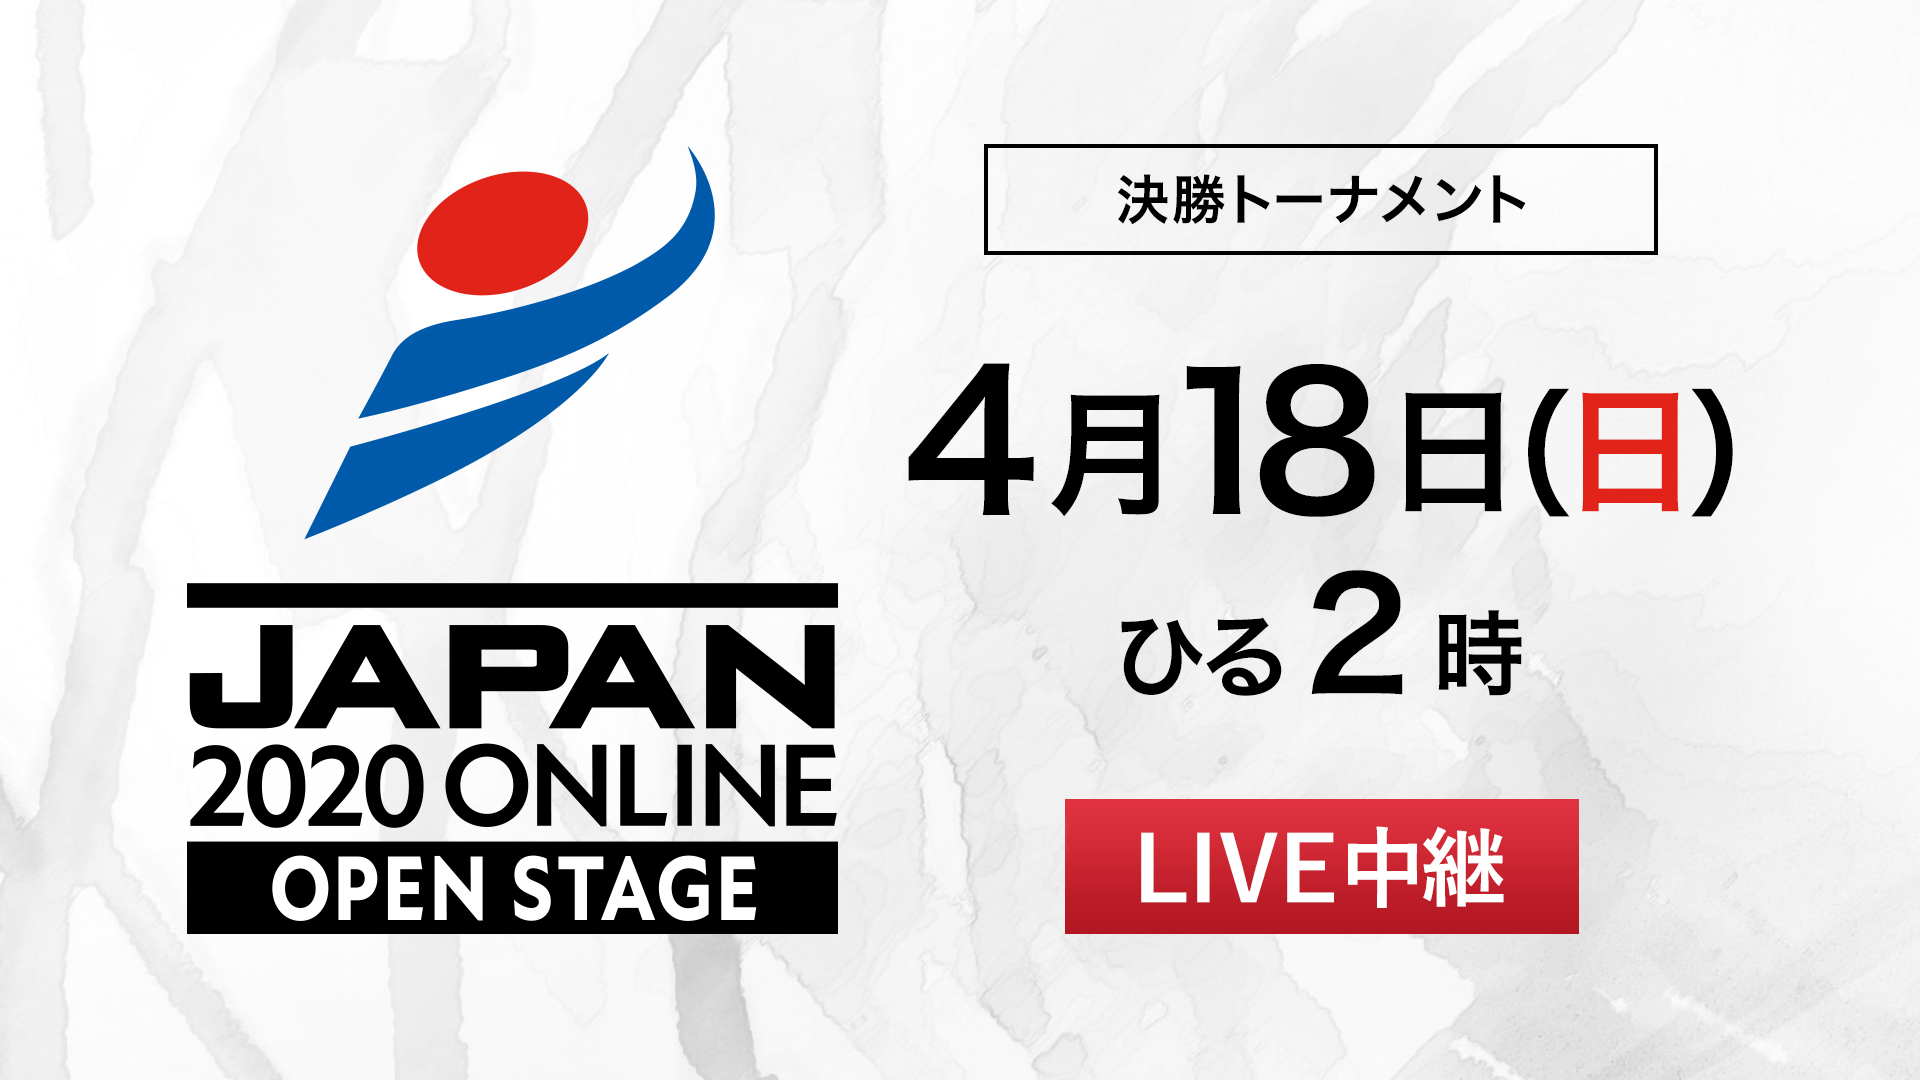 JAPAN 2020 ONLINE OPEN STAGE